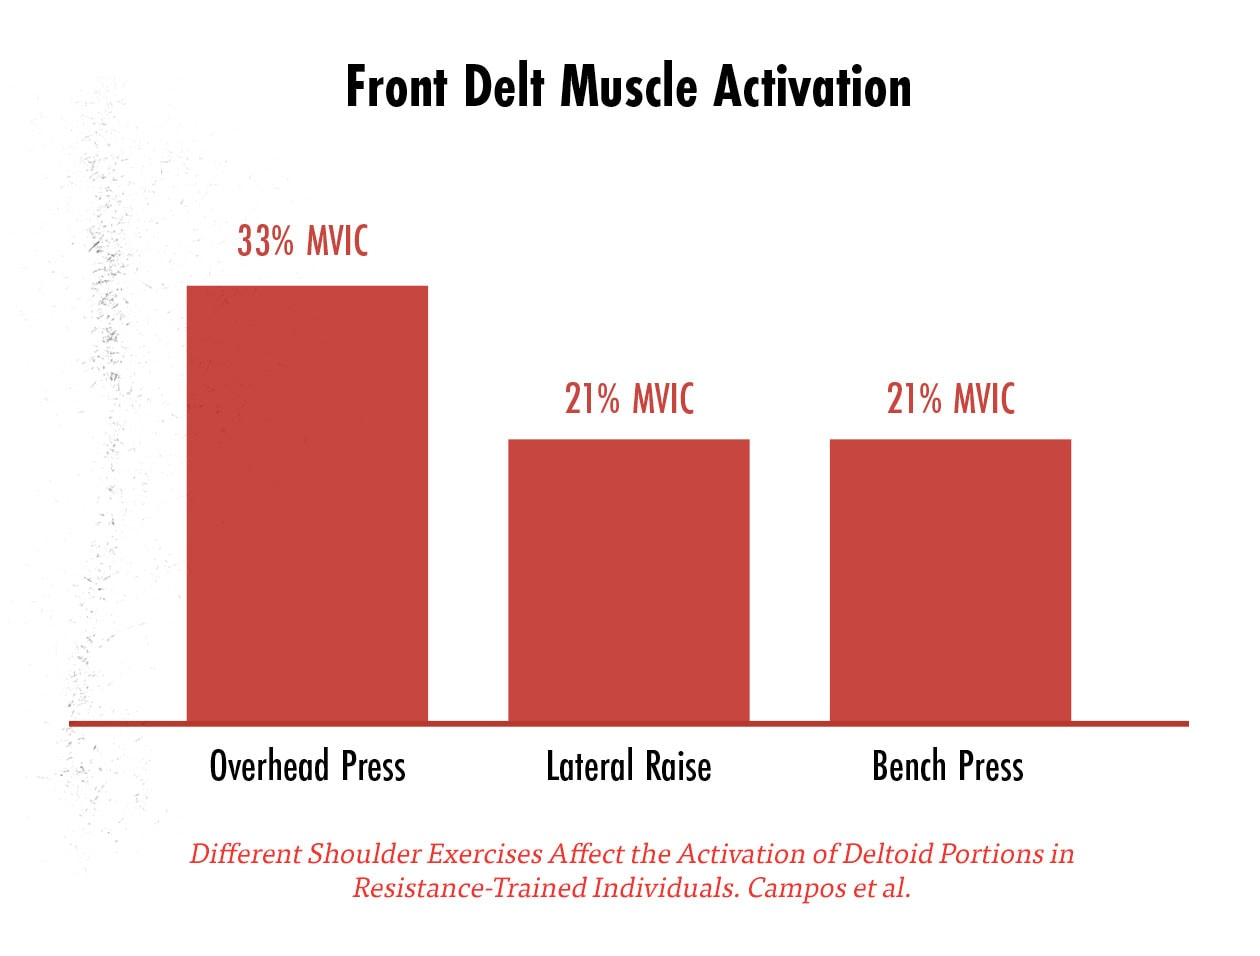 EMG graph showing muscle activation in the front delts from various shoulder exercises, with the overhead press being the best.